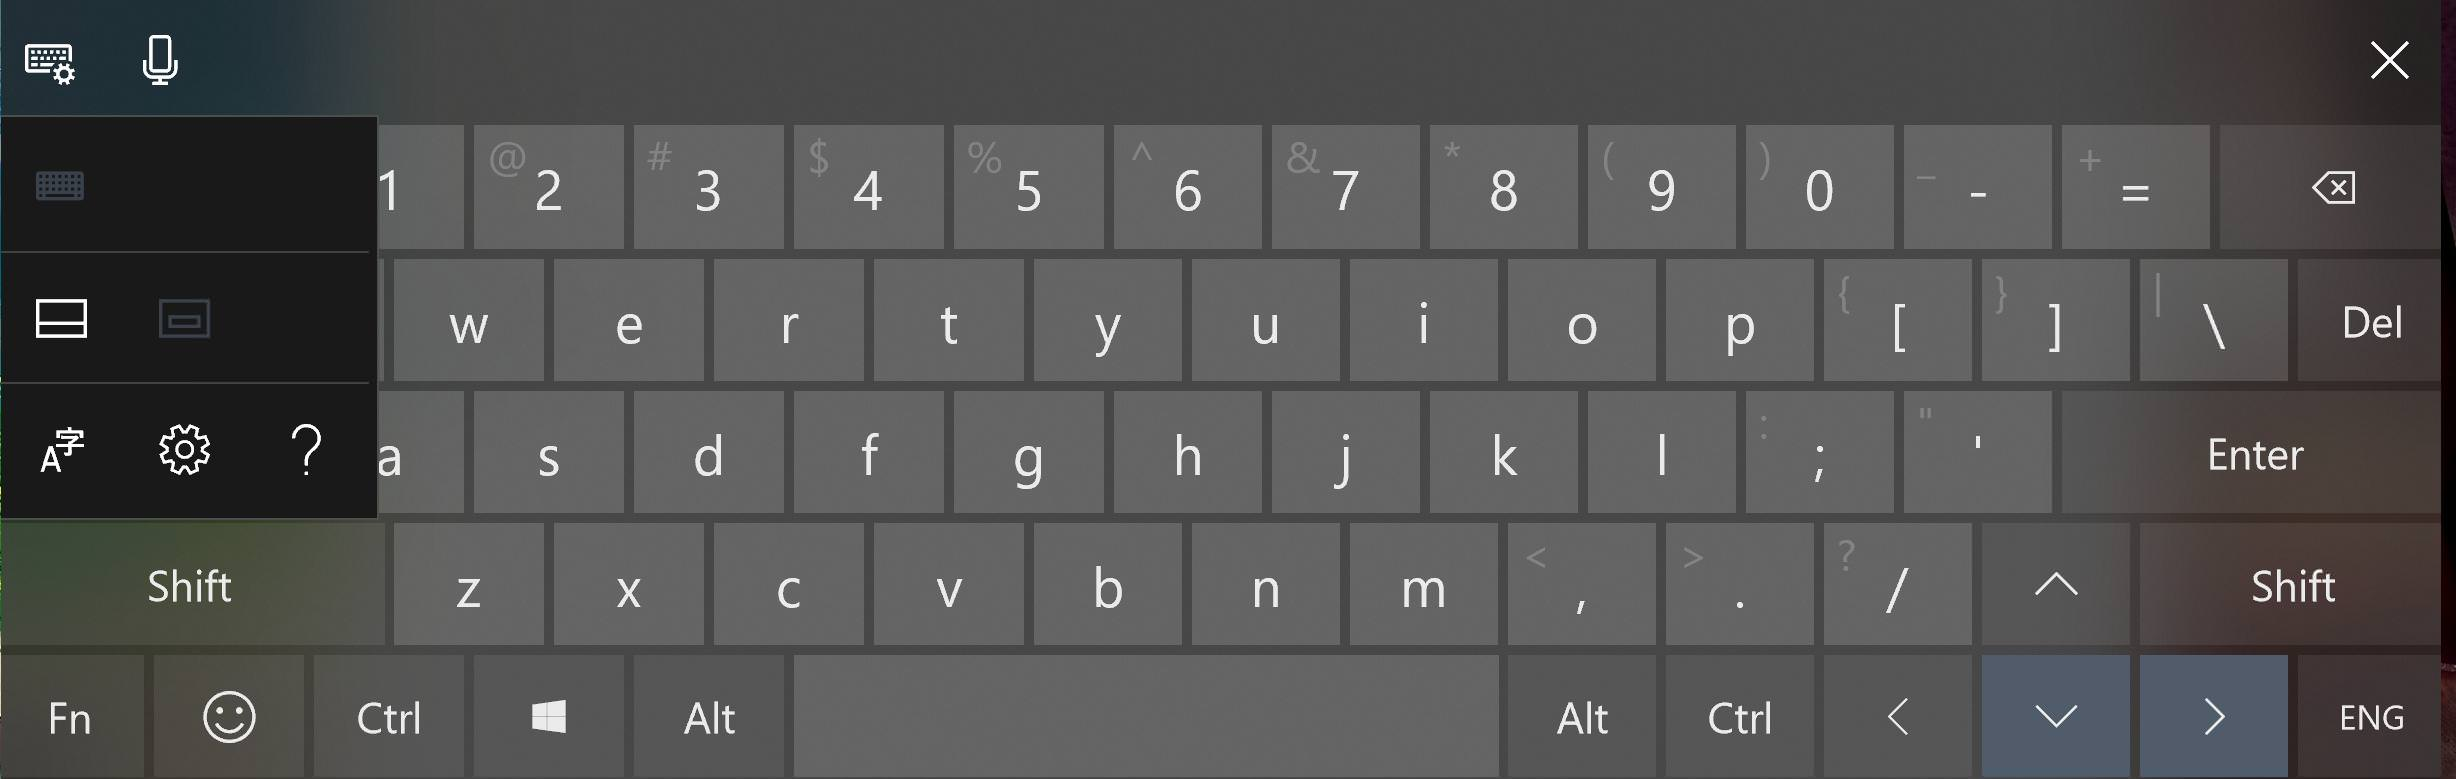 Creating a custom touch keyboard layout for Windows 10 (1803 and